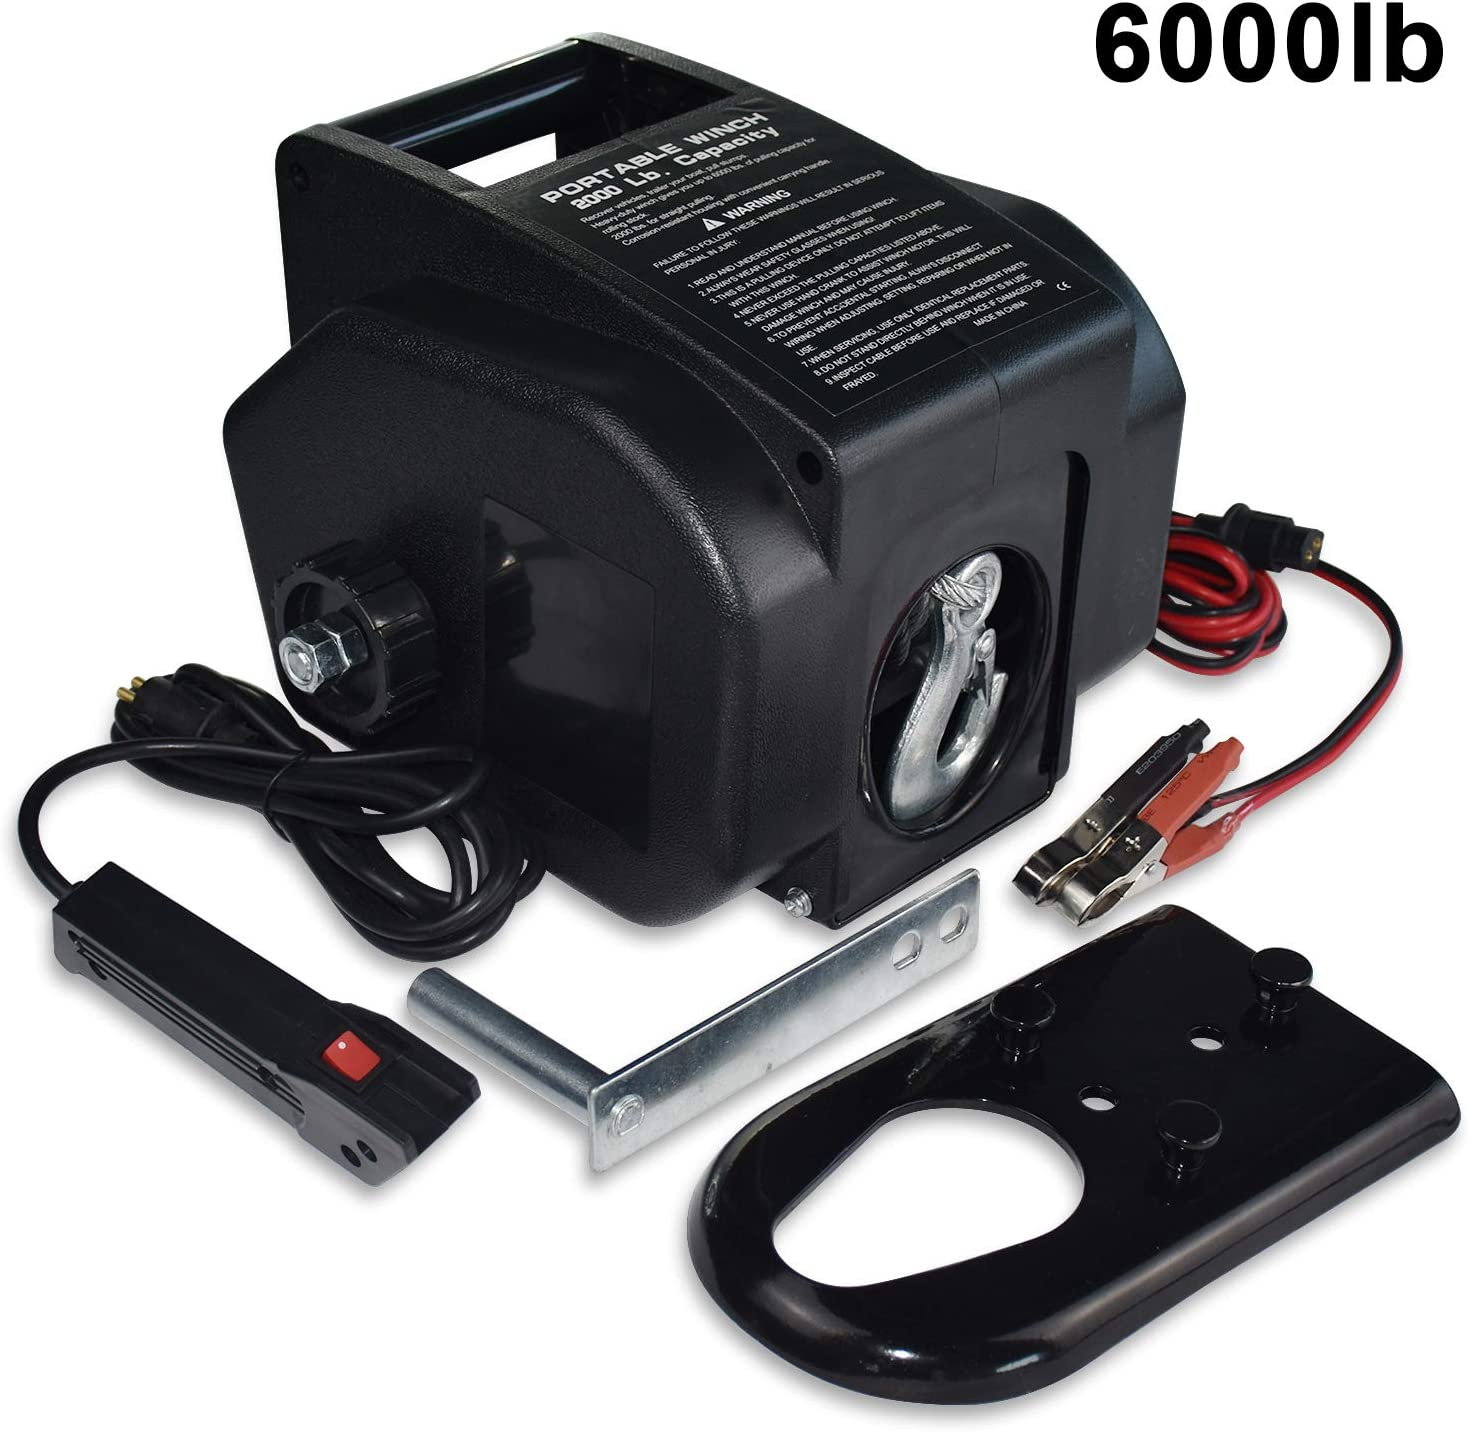 5 Best Electric Winch For Boat Trailer Reviews Of 2021 4